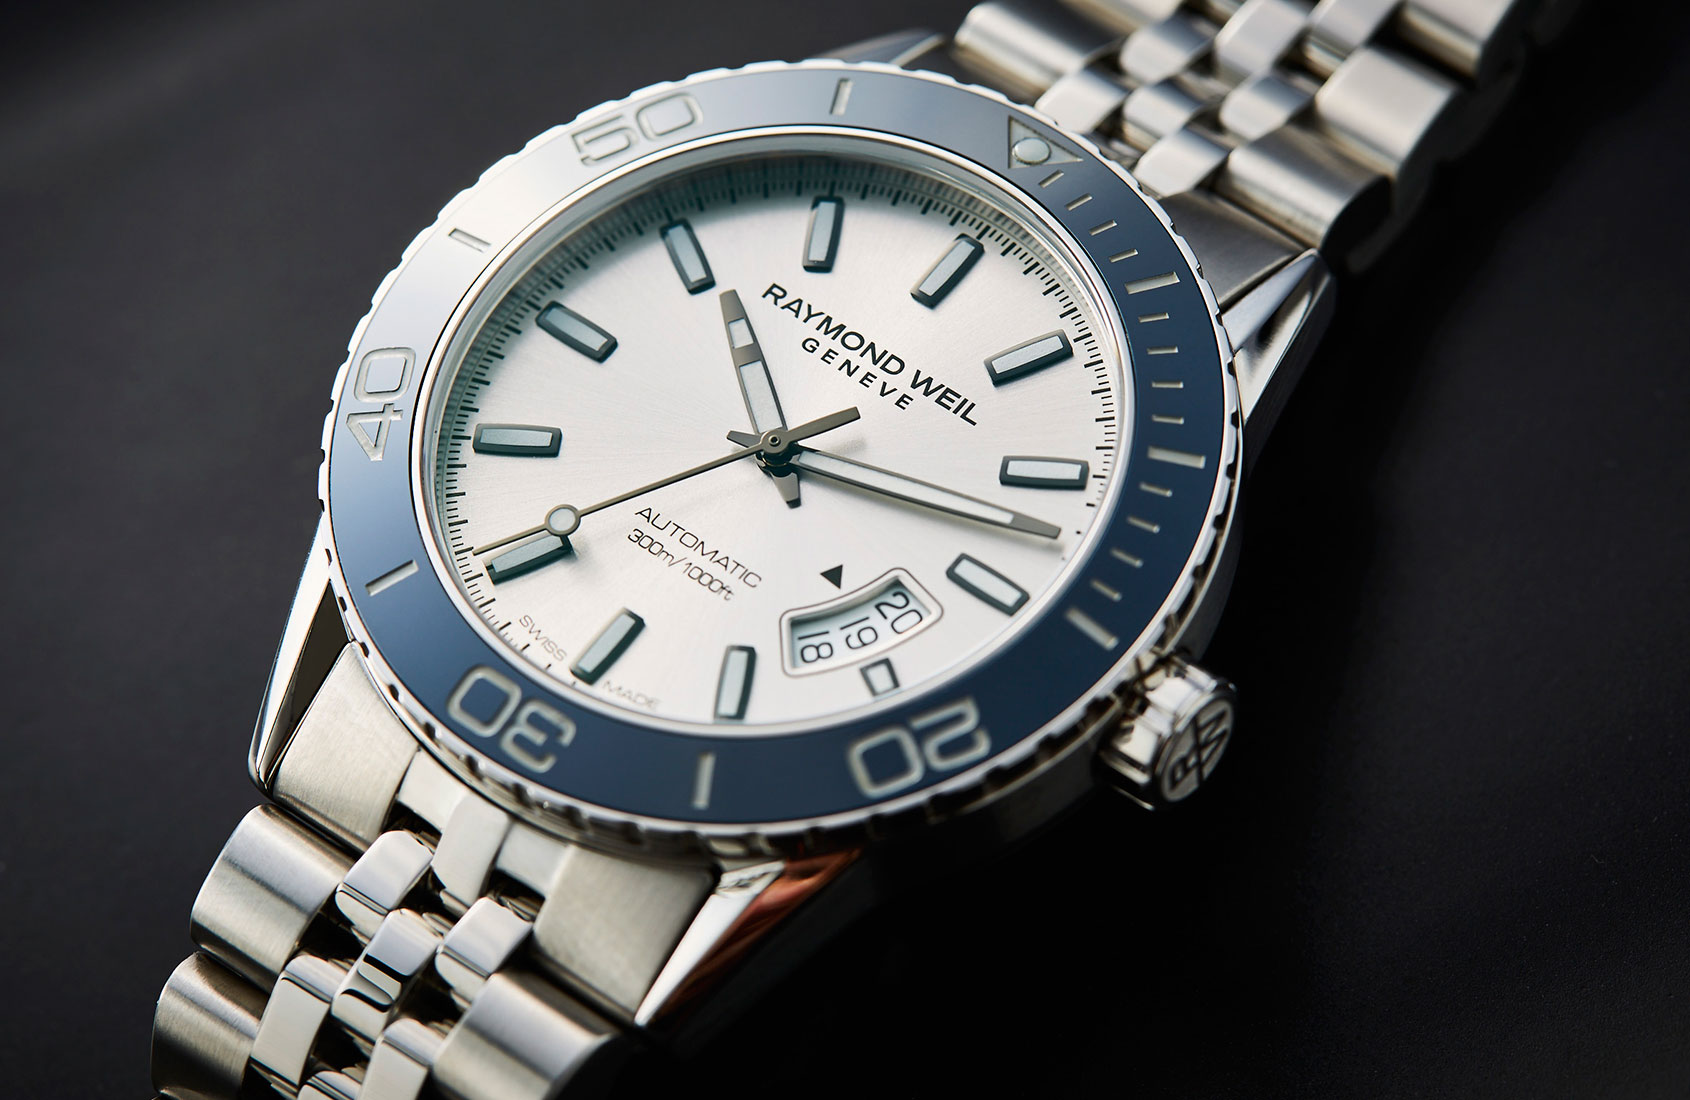 HANDSON Take the plunge with the Raymond Weil Freelancer Diver  Time and Tide Watches